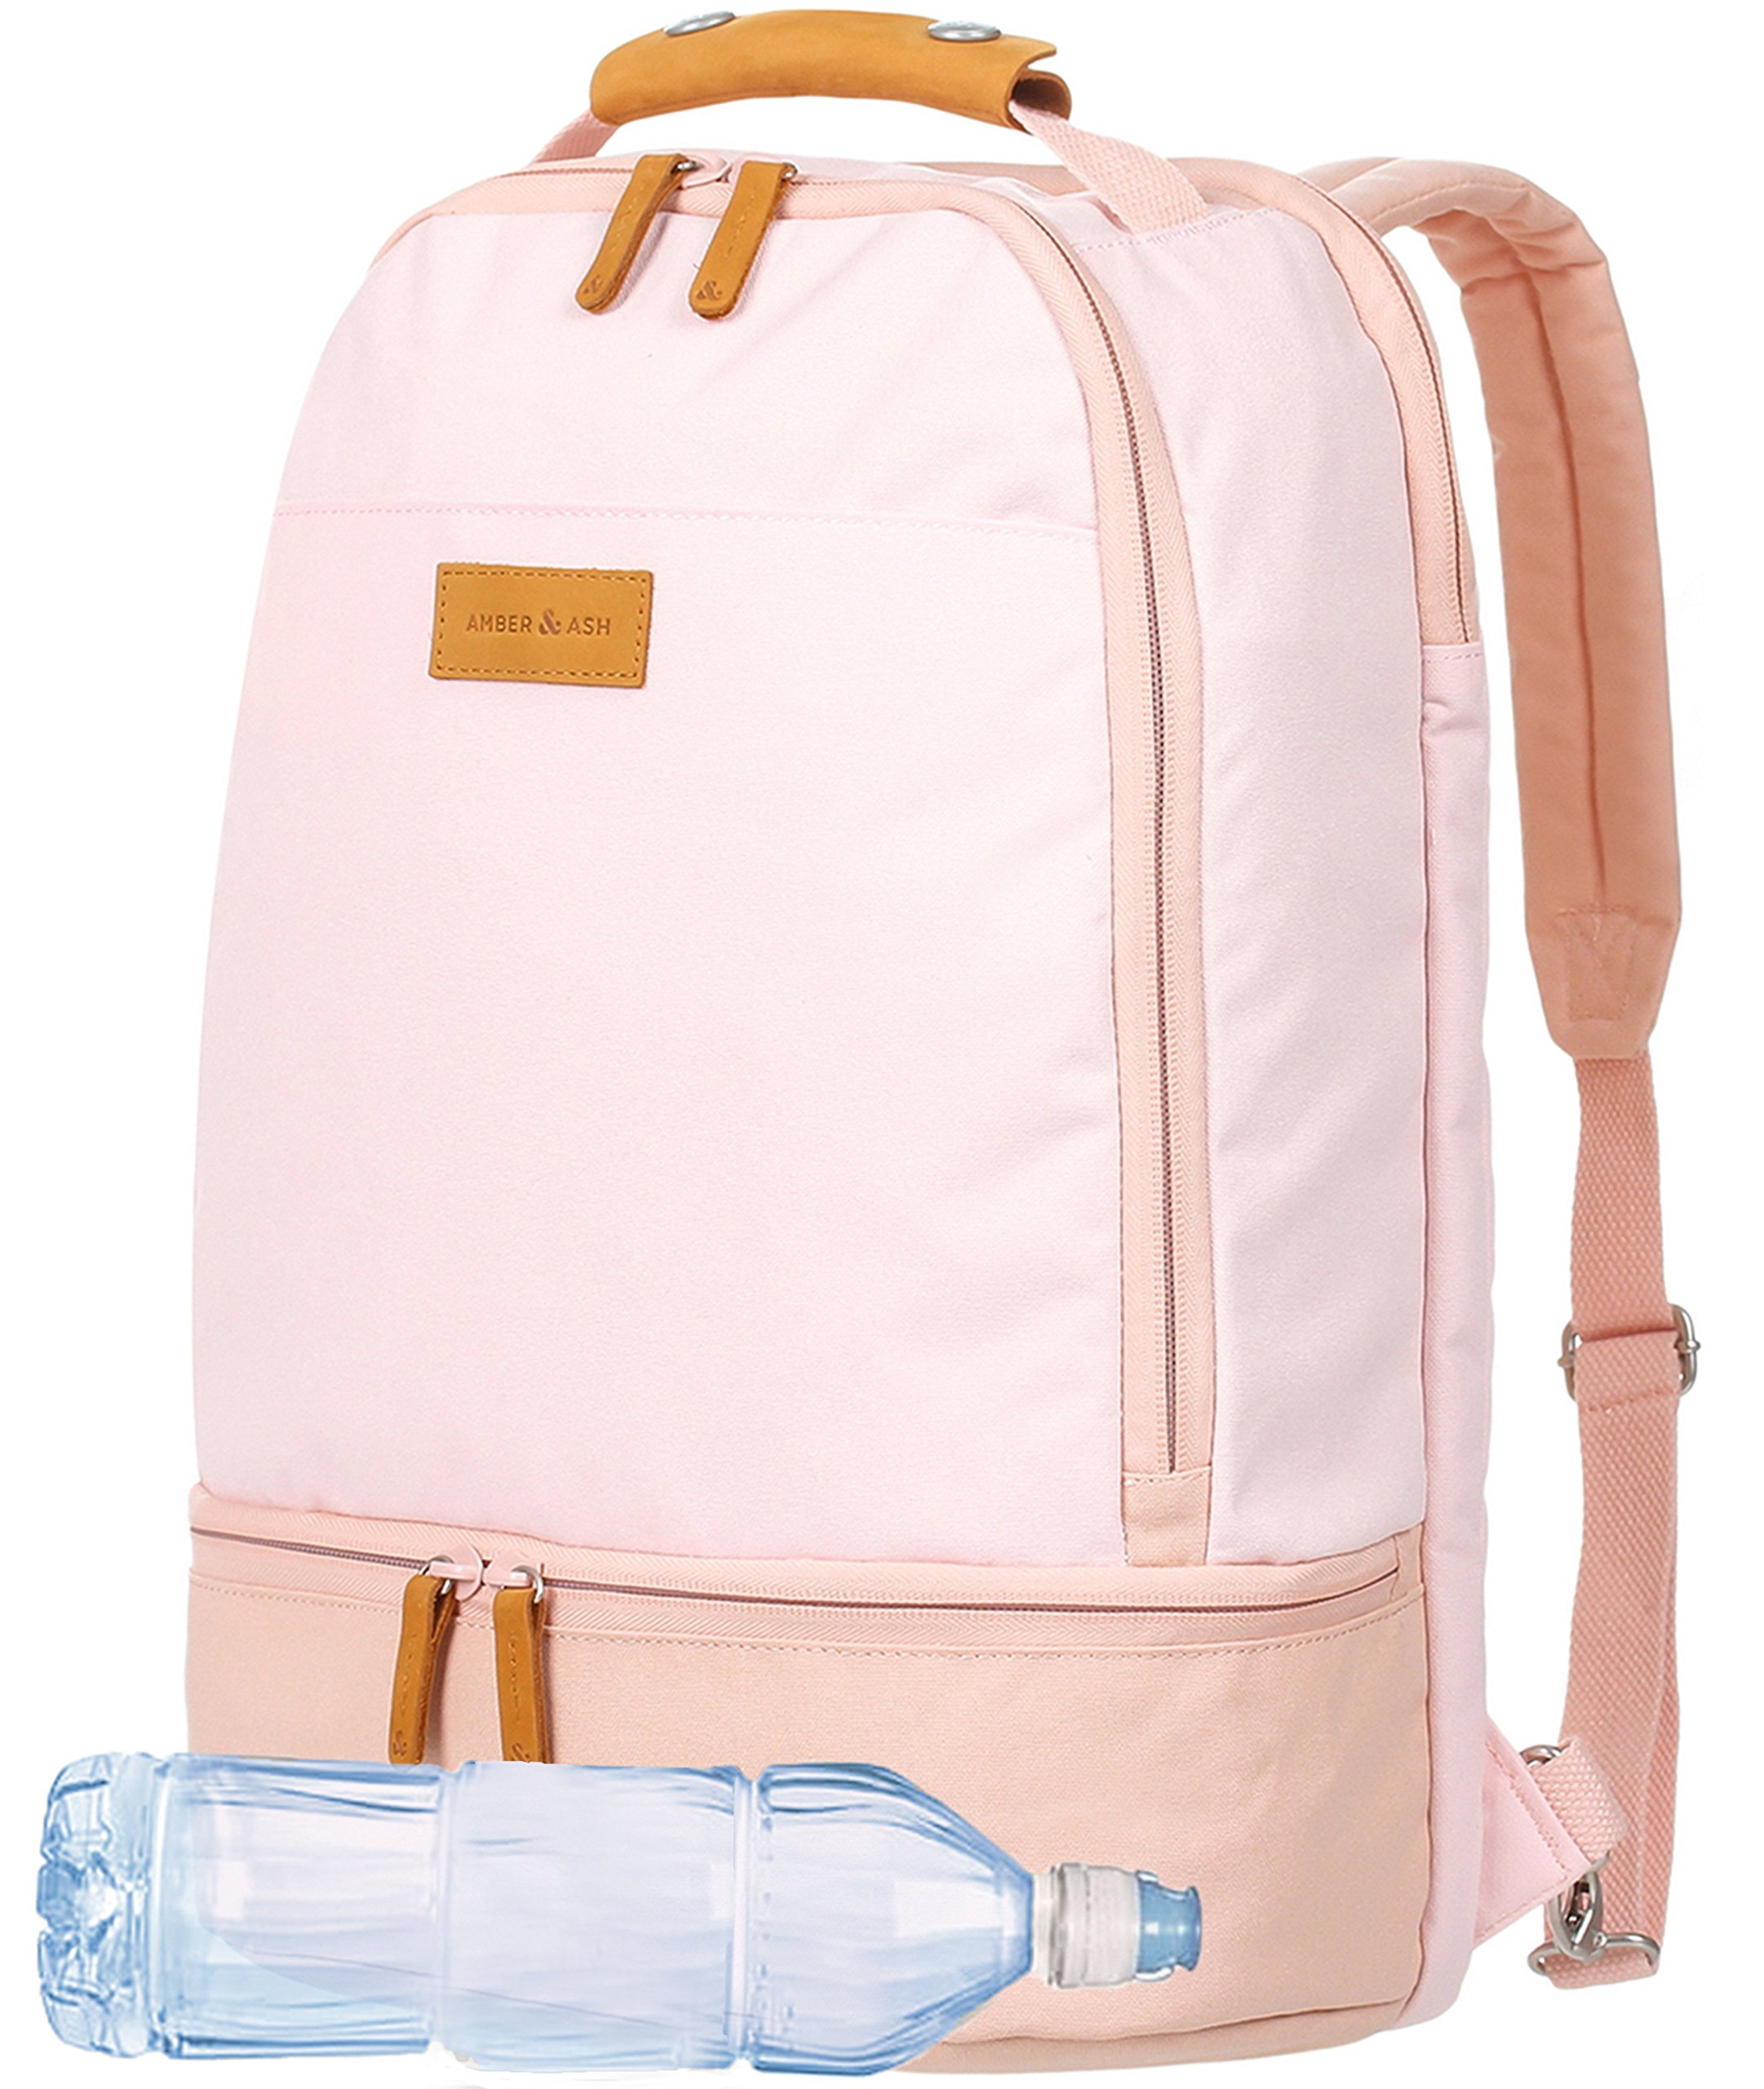 AMBER & ASH Everyday Laptop School Backpack for Girls, Business Anti Theft Slim Durable Water Resistant College School Computer Bag for Women Fits 15.6 Inch Laptop Notebook [Pink]